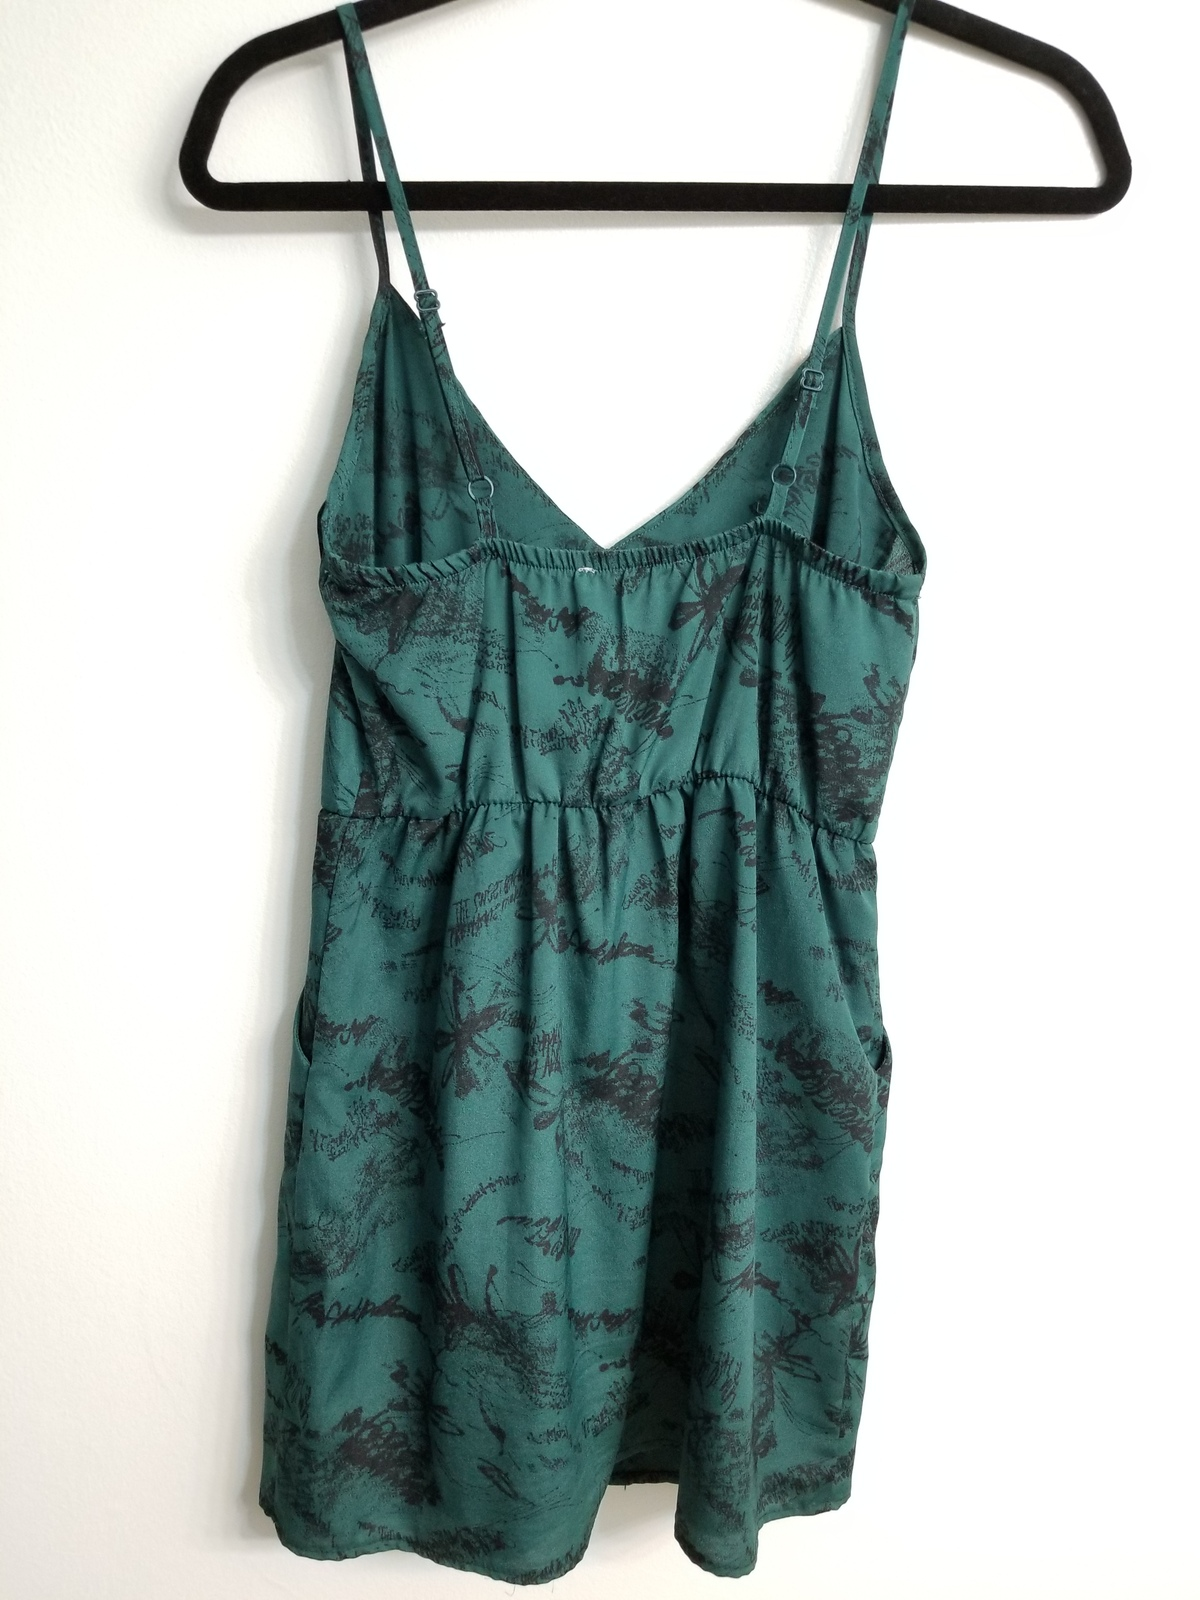 Lush dress green and black print XS PRE-OWNED shortened